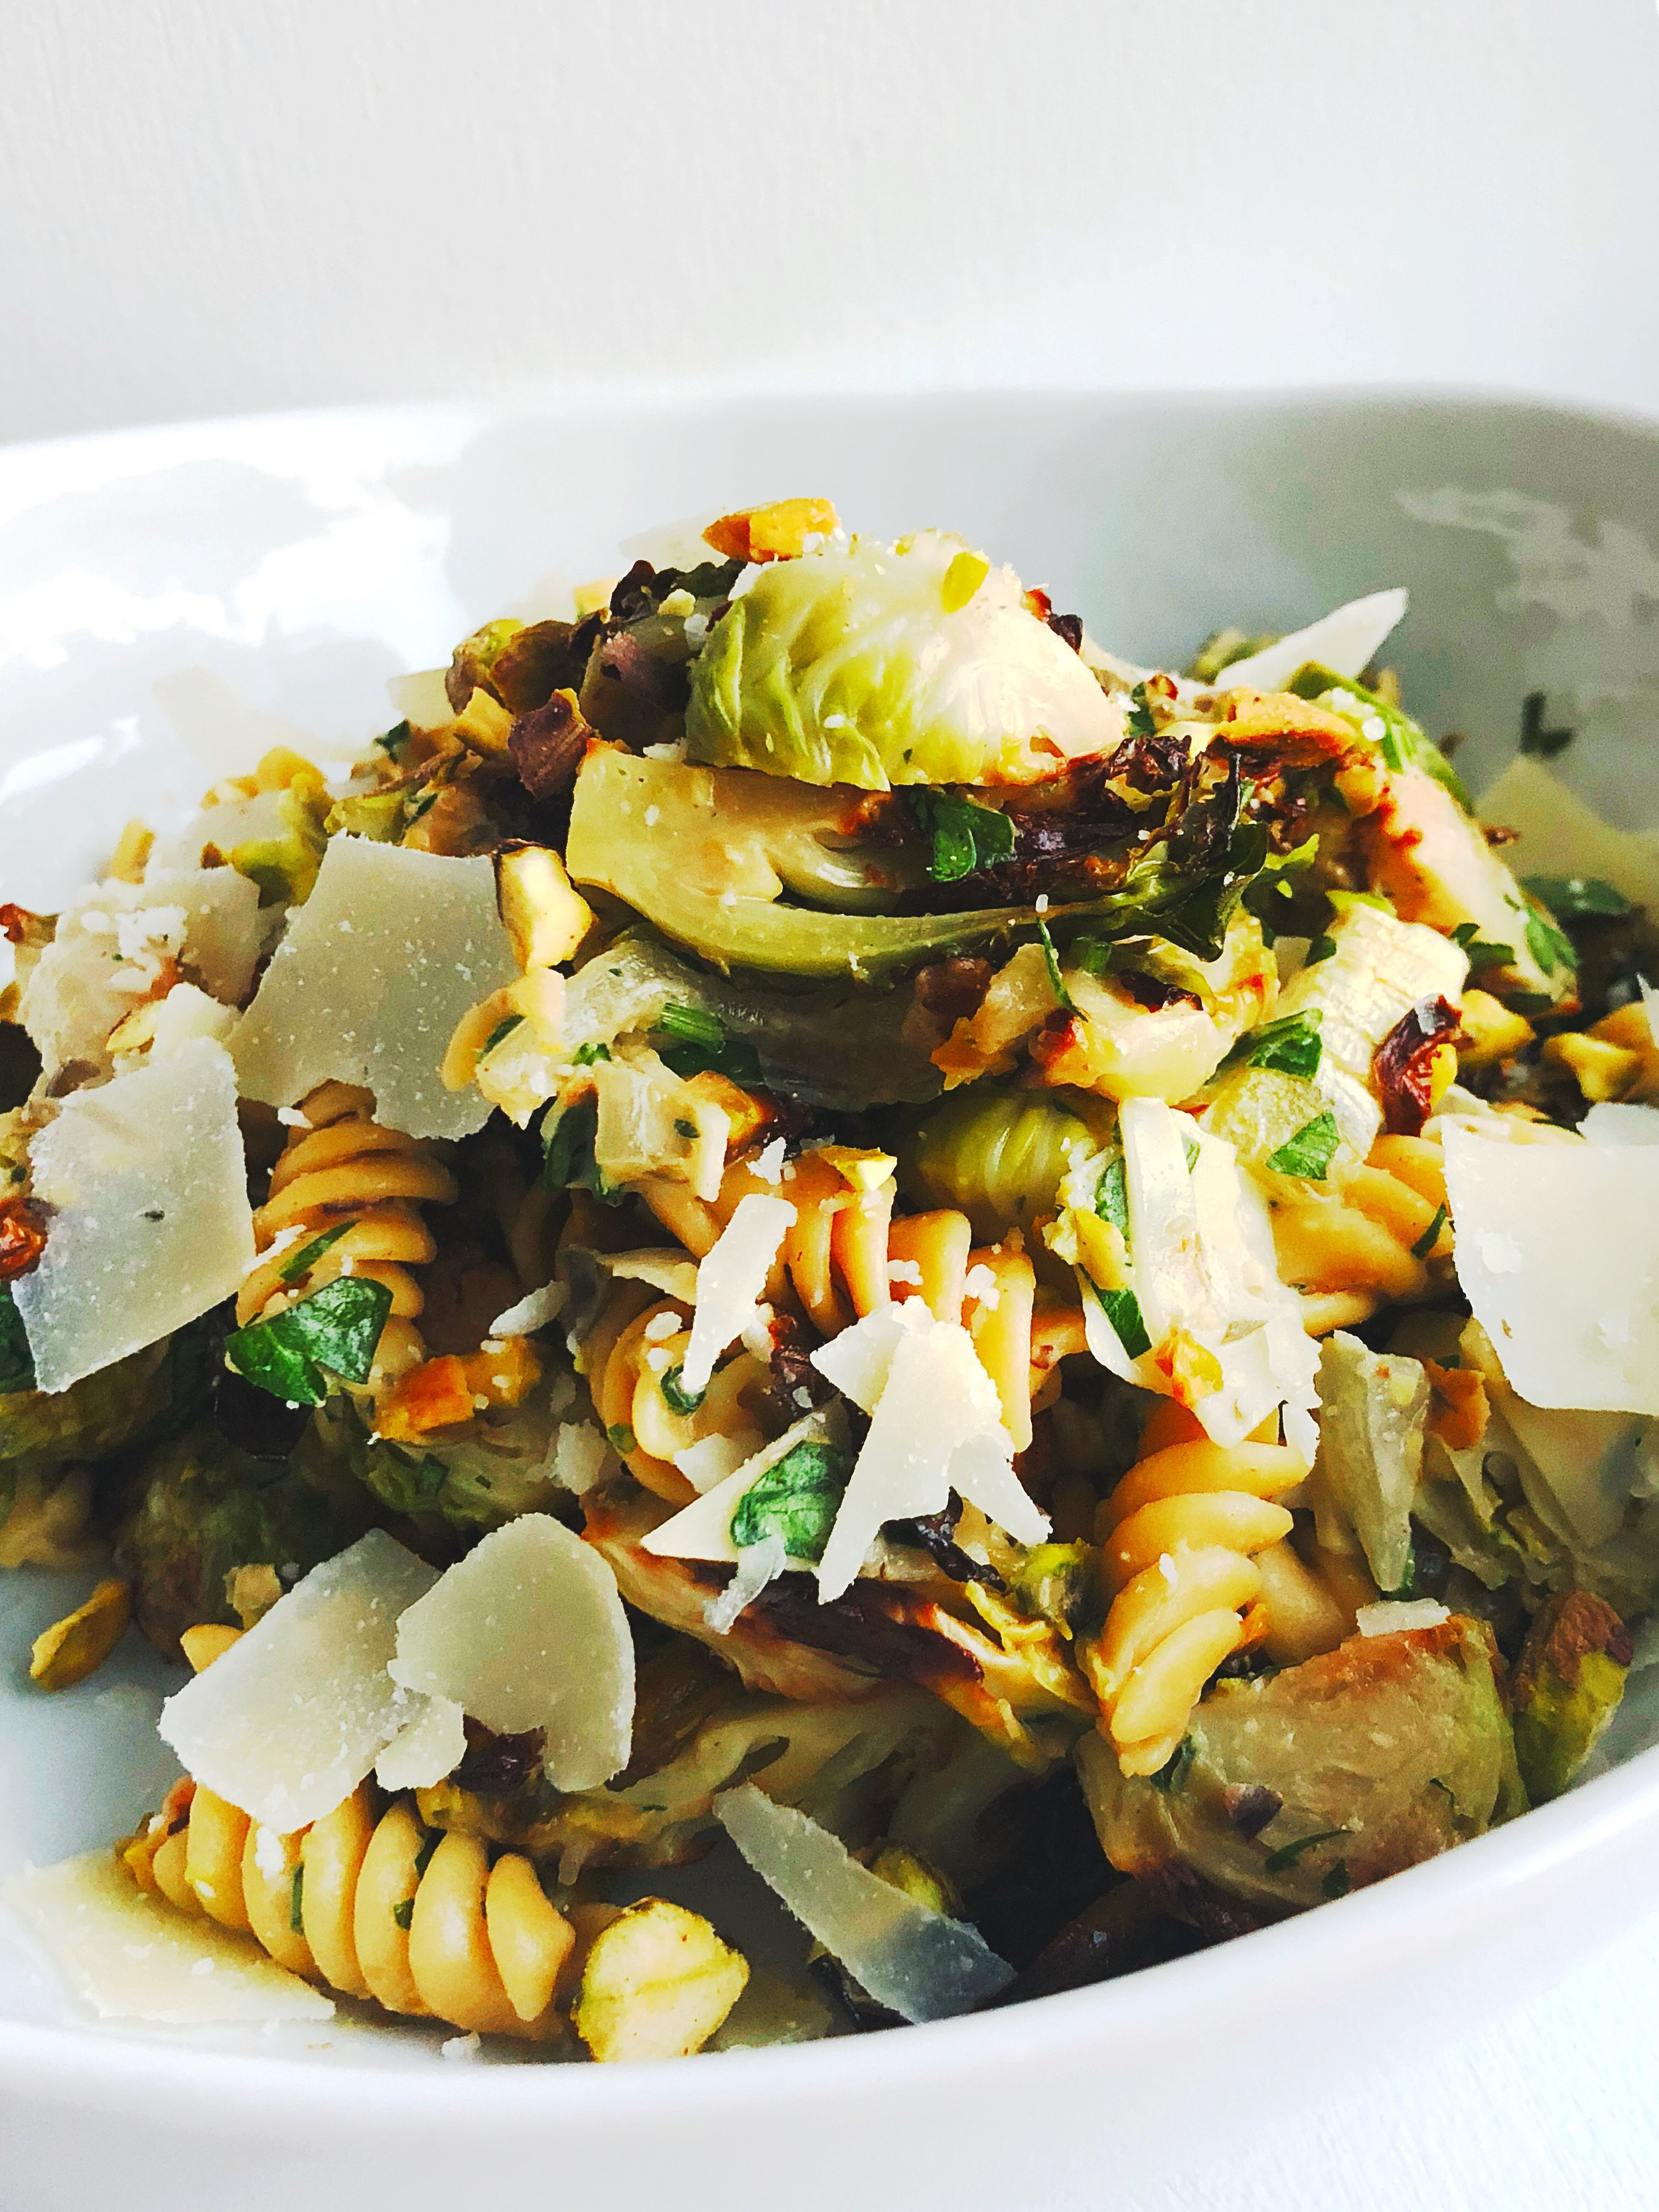 Creamy-tahini-Roasted-Brussels-sprouts-pasta.jpg